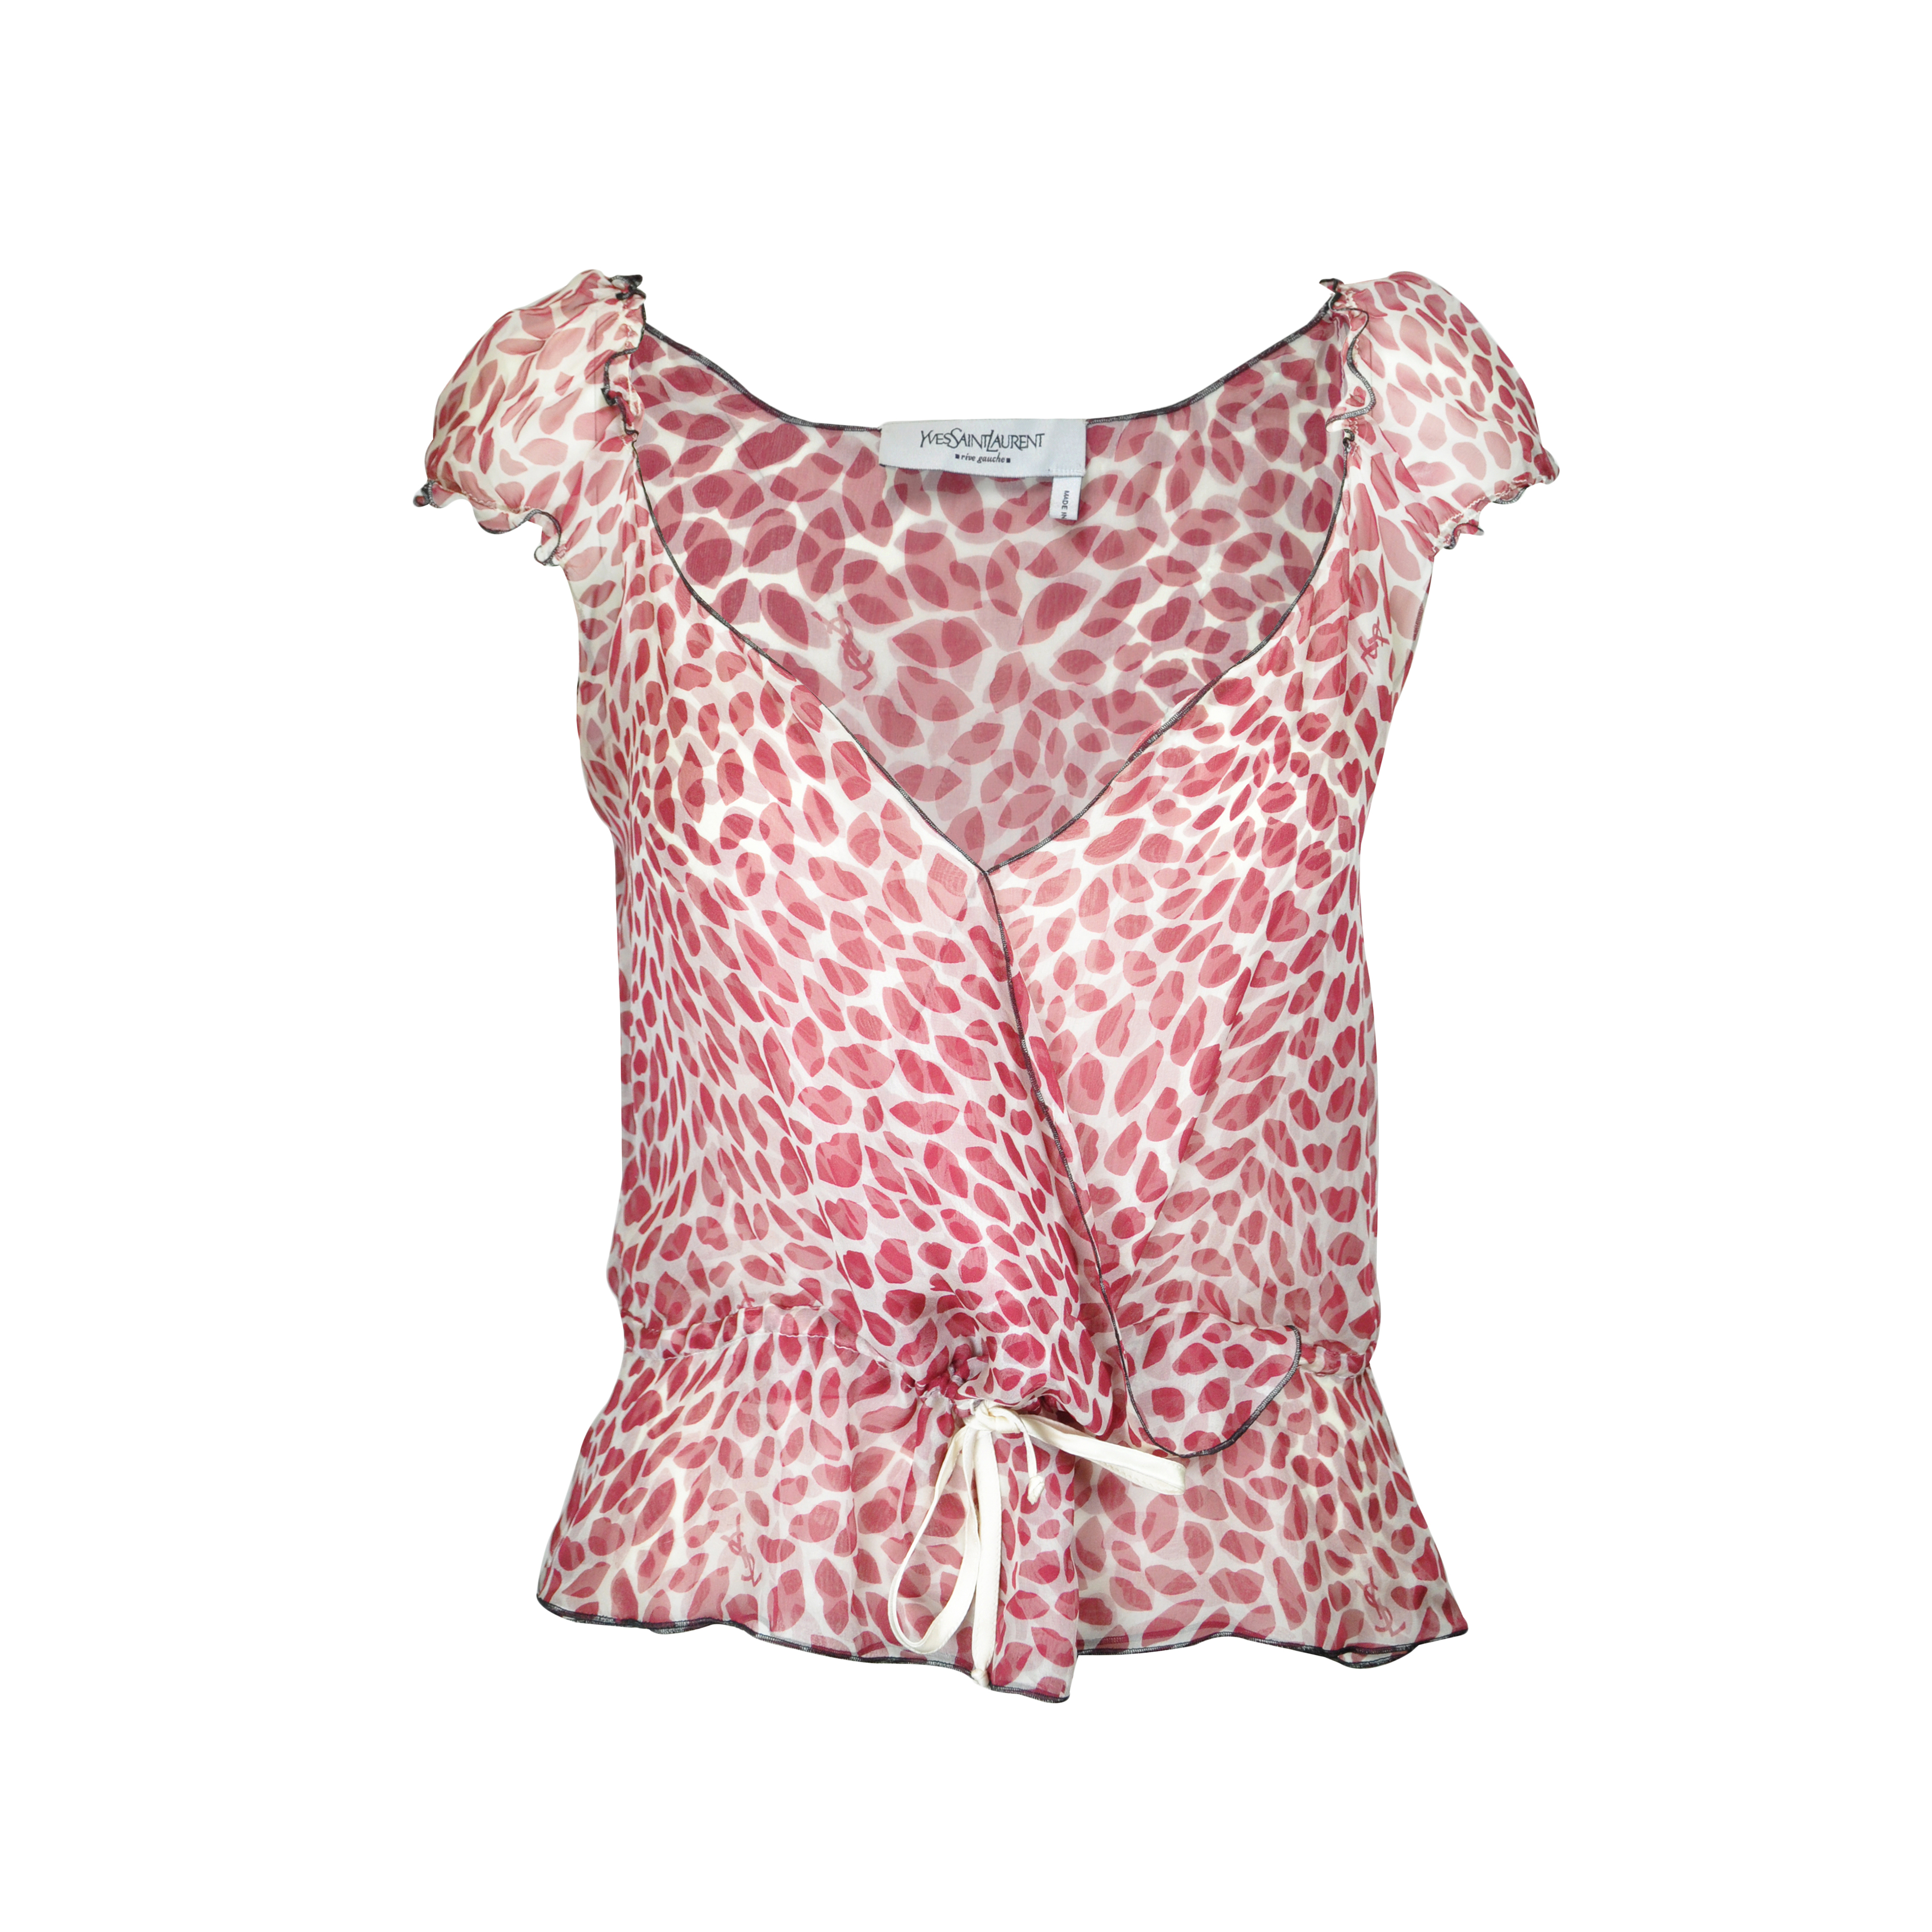 7d211296d74be7 Authentic Second Hand Yves Saint Laurent Heart and Lip Print Top  (PSS-067-00104)